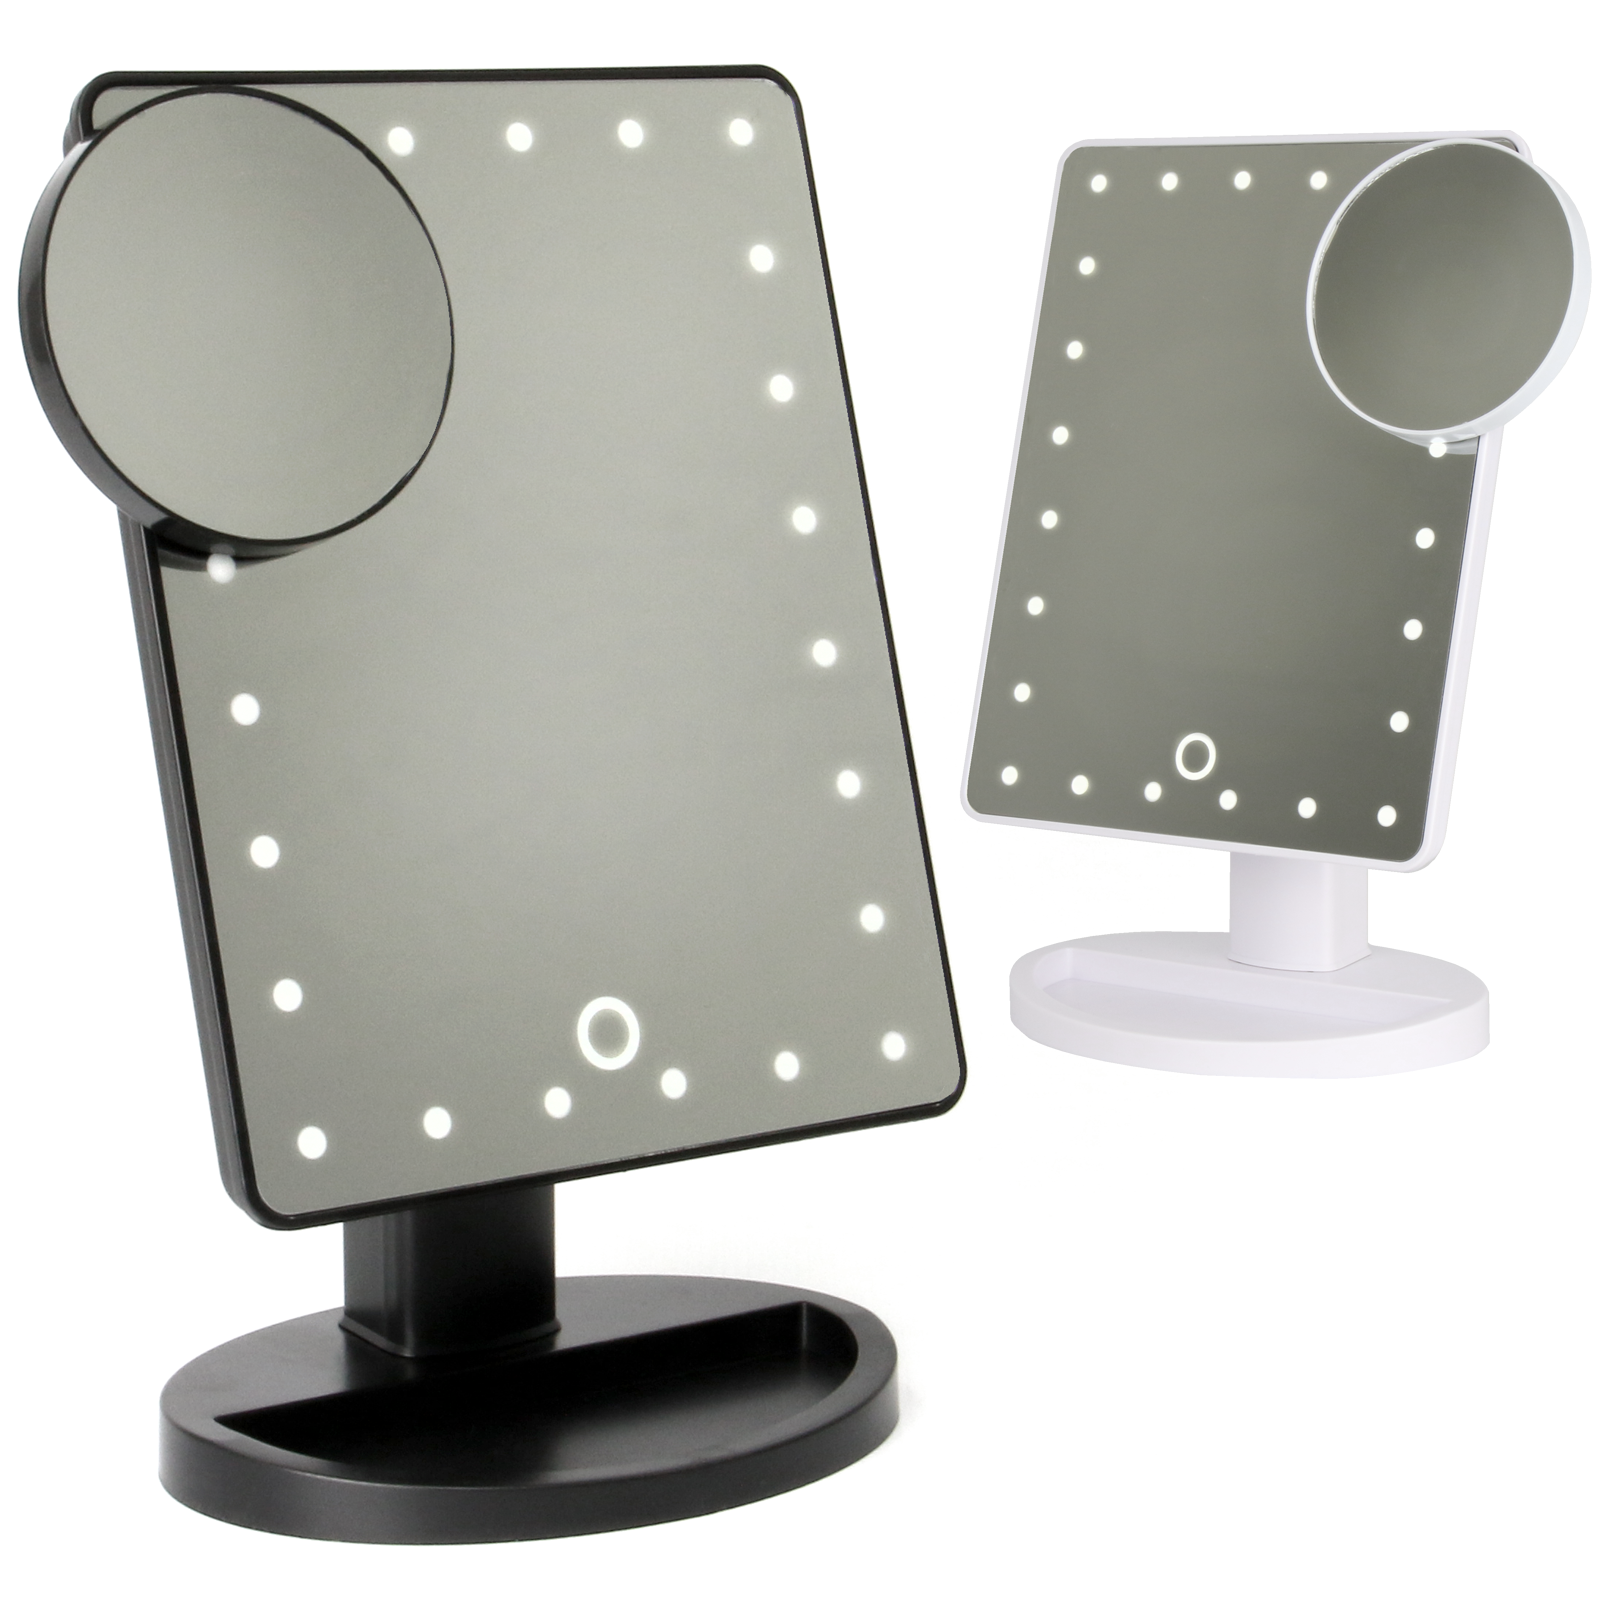 Led Light Up Illuminated Make Bathroom Mirror